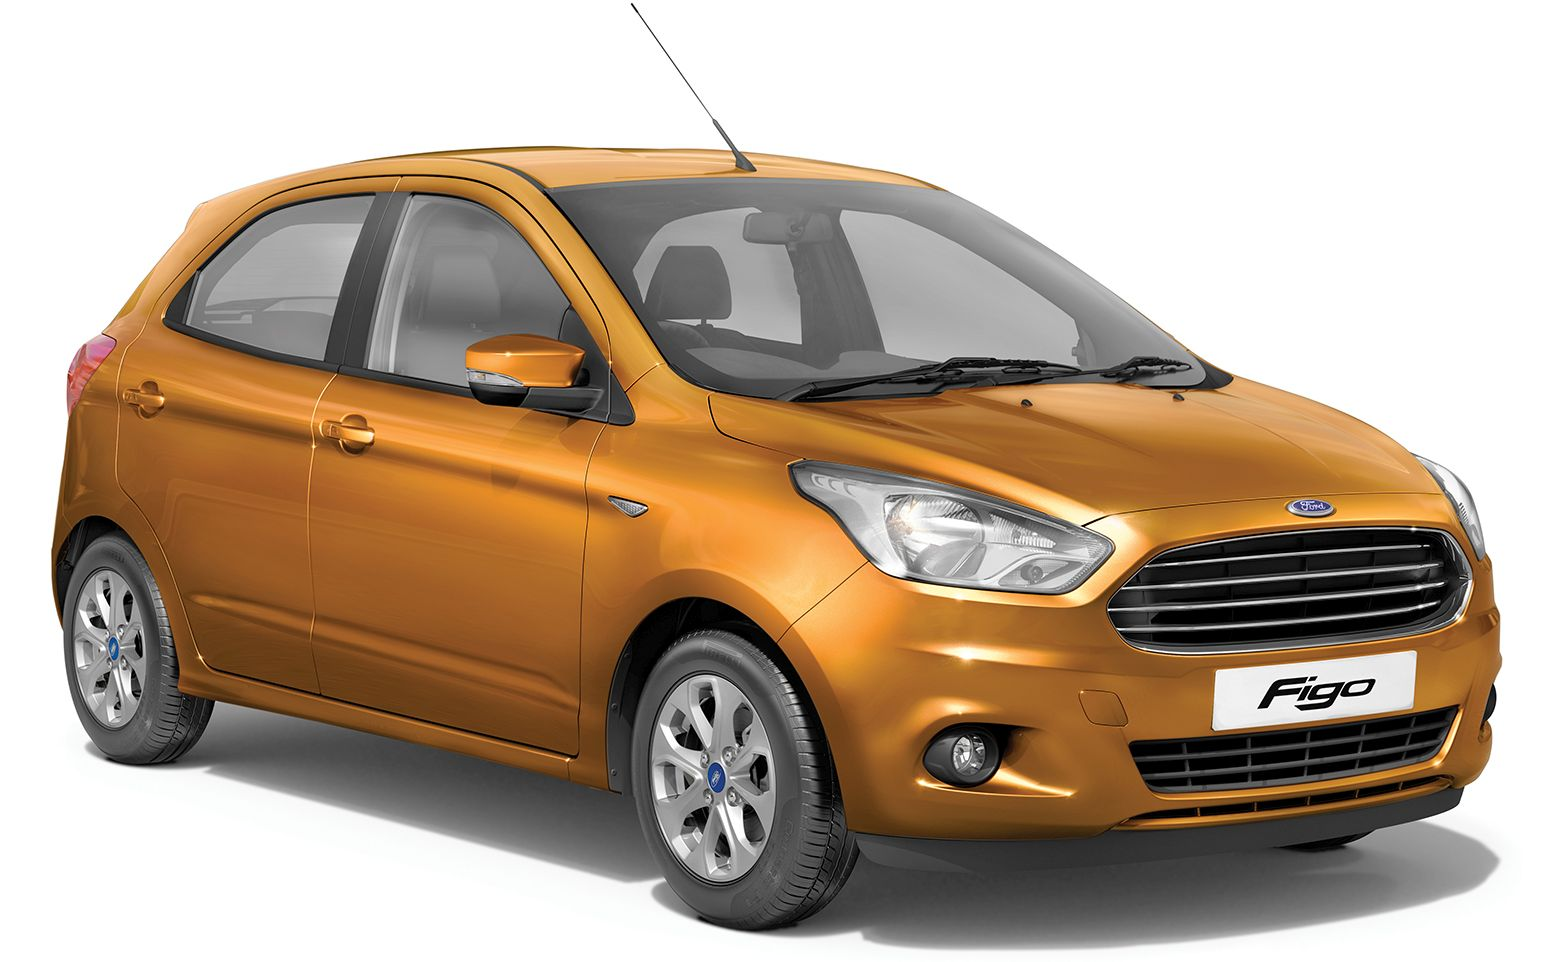 What Is The Price Of Ford Figo 2017 2018 Best Cars Reviews